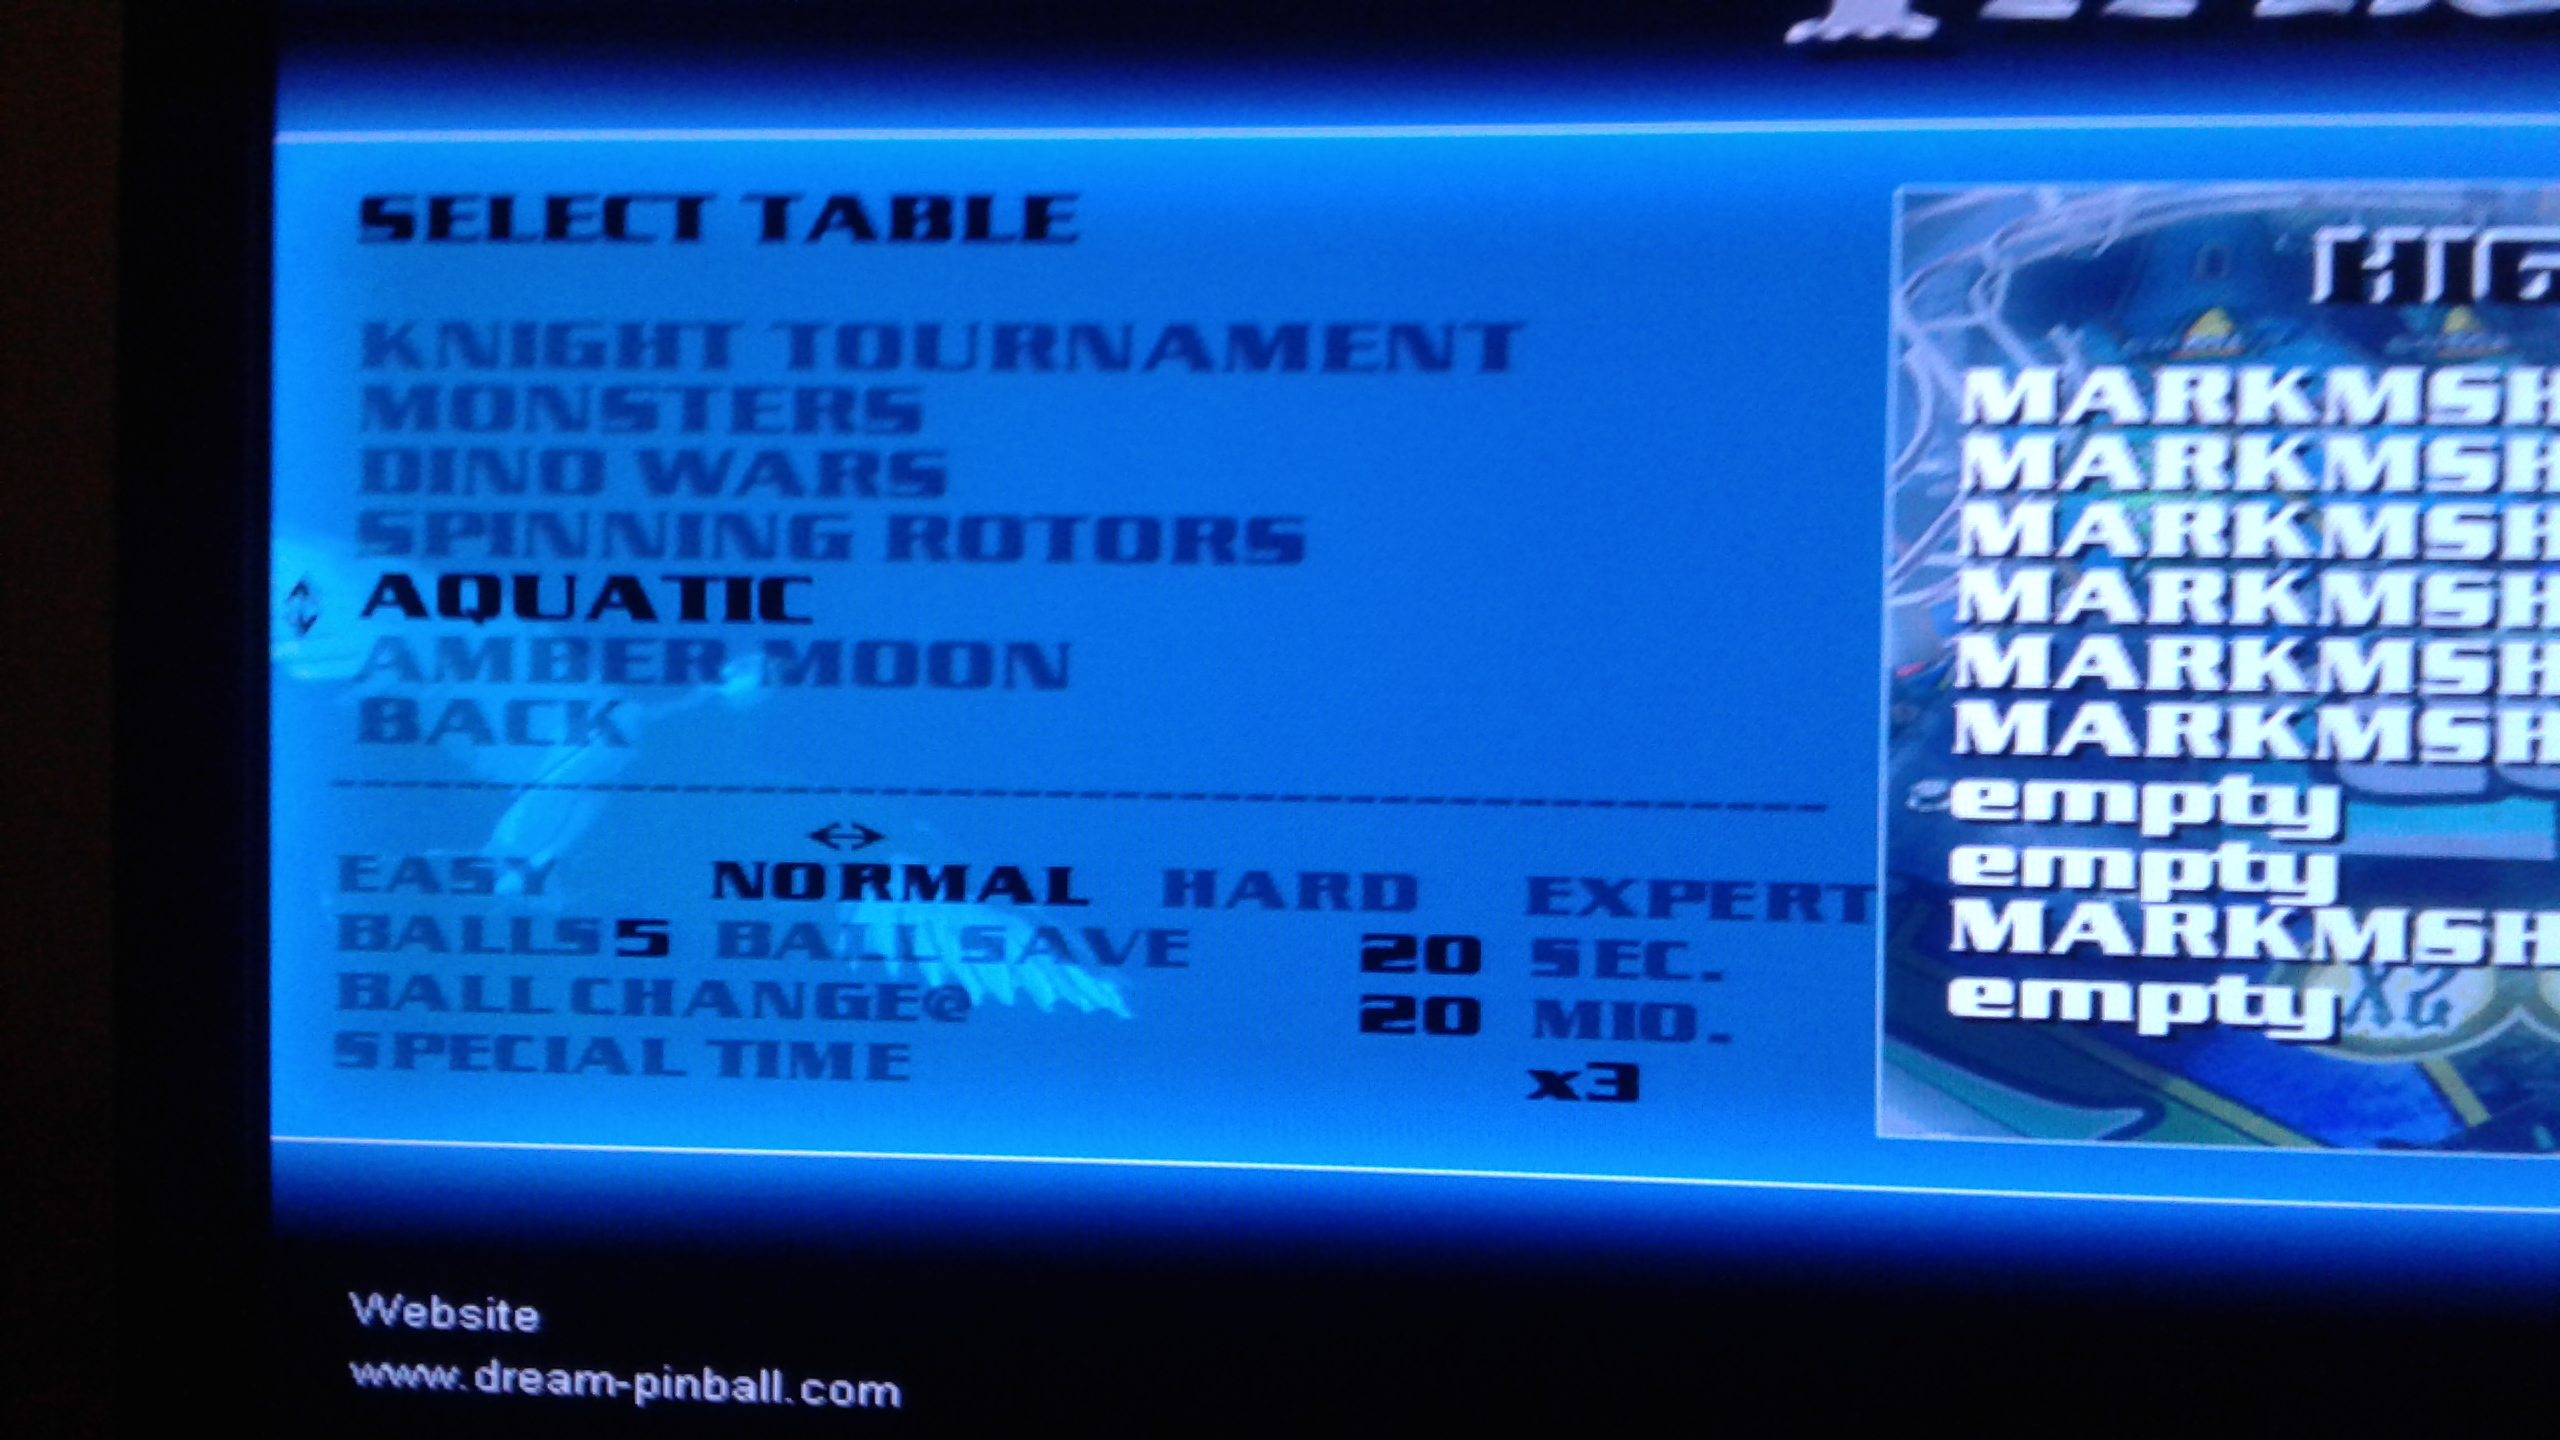 Mark: Dream Pinball 3D: Aquatic [Normal] (PC Emulated / DOSBox) 1,664,328,180 points on 2019-05-20 00:48:22